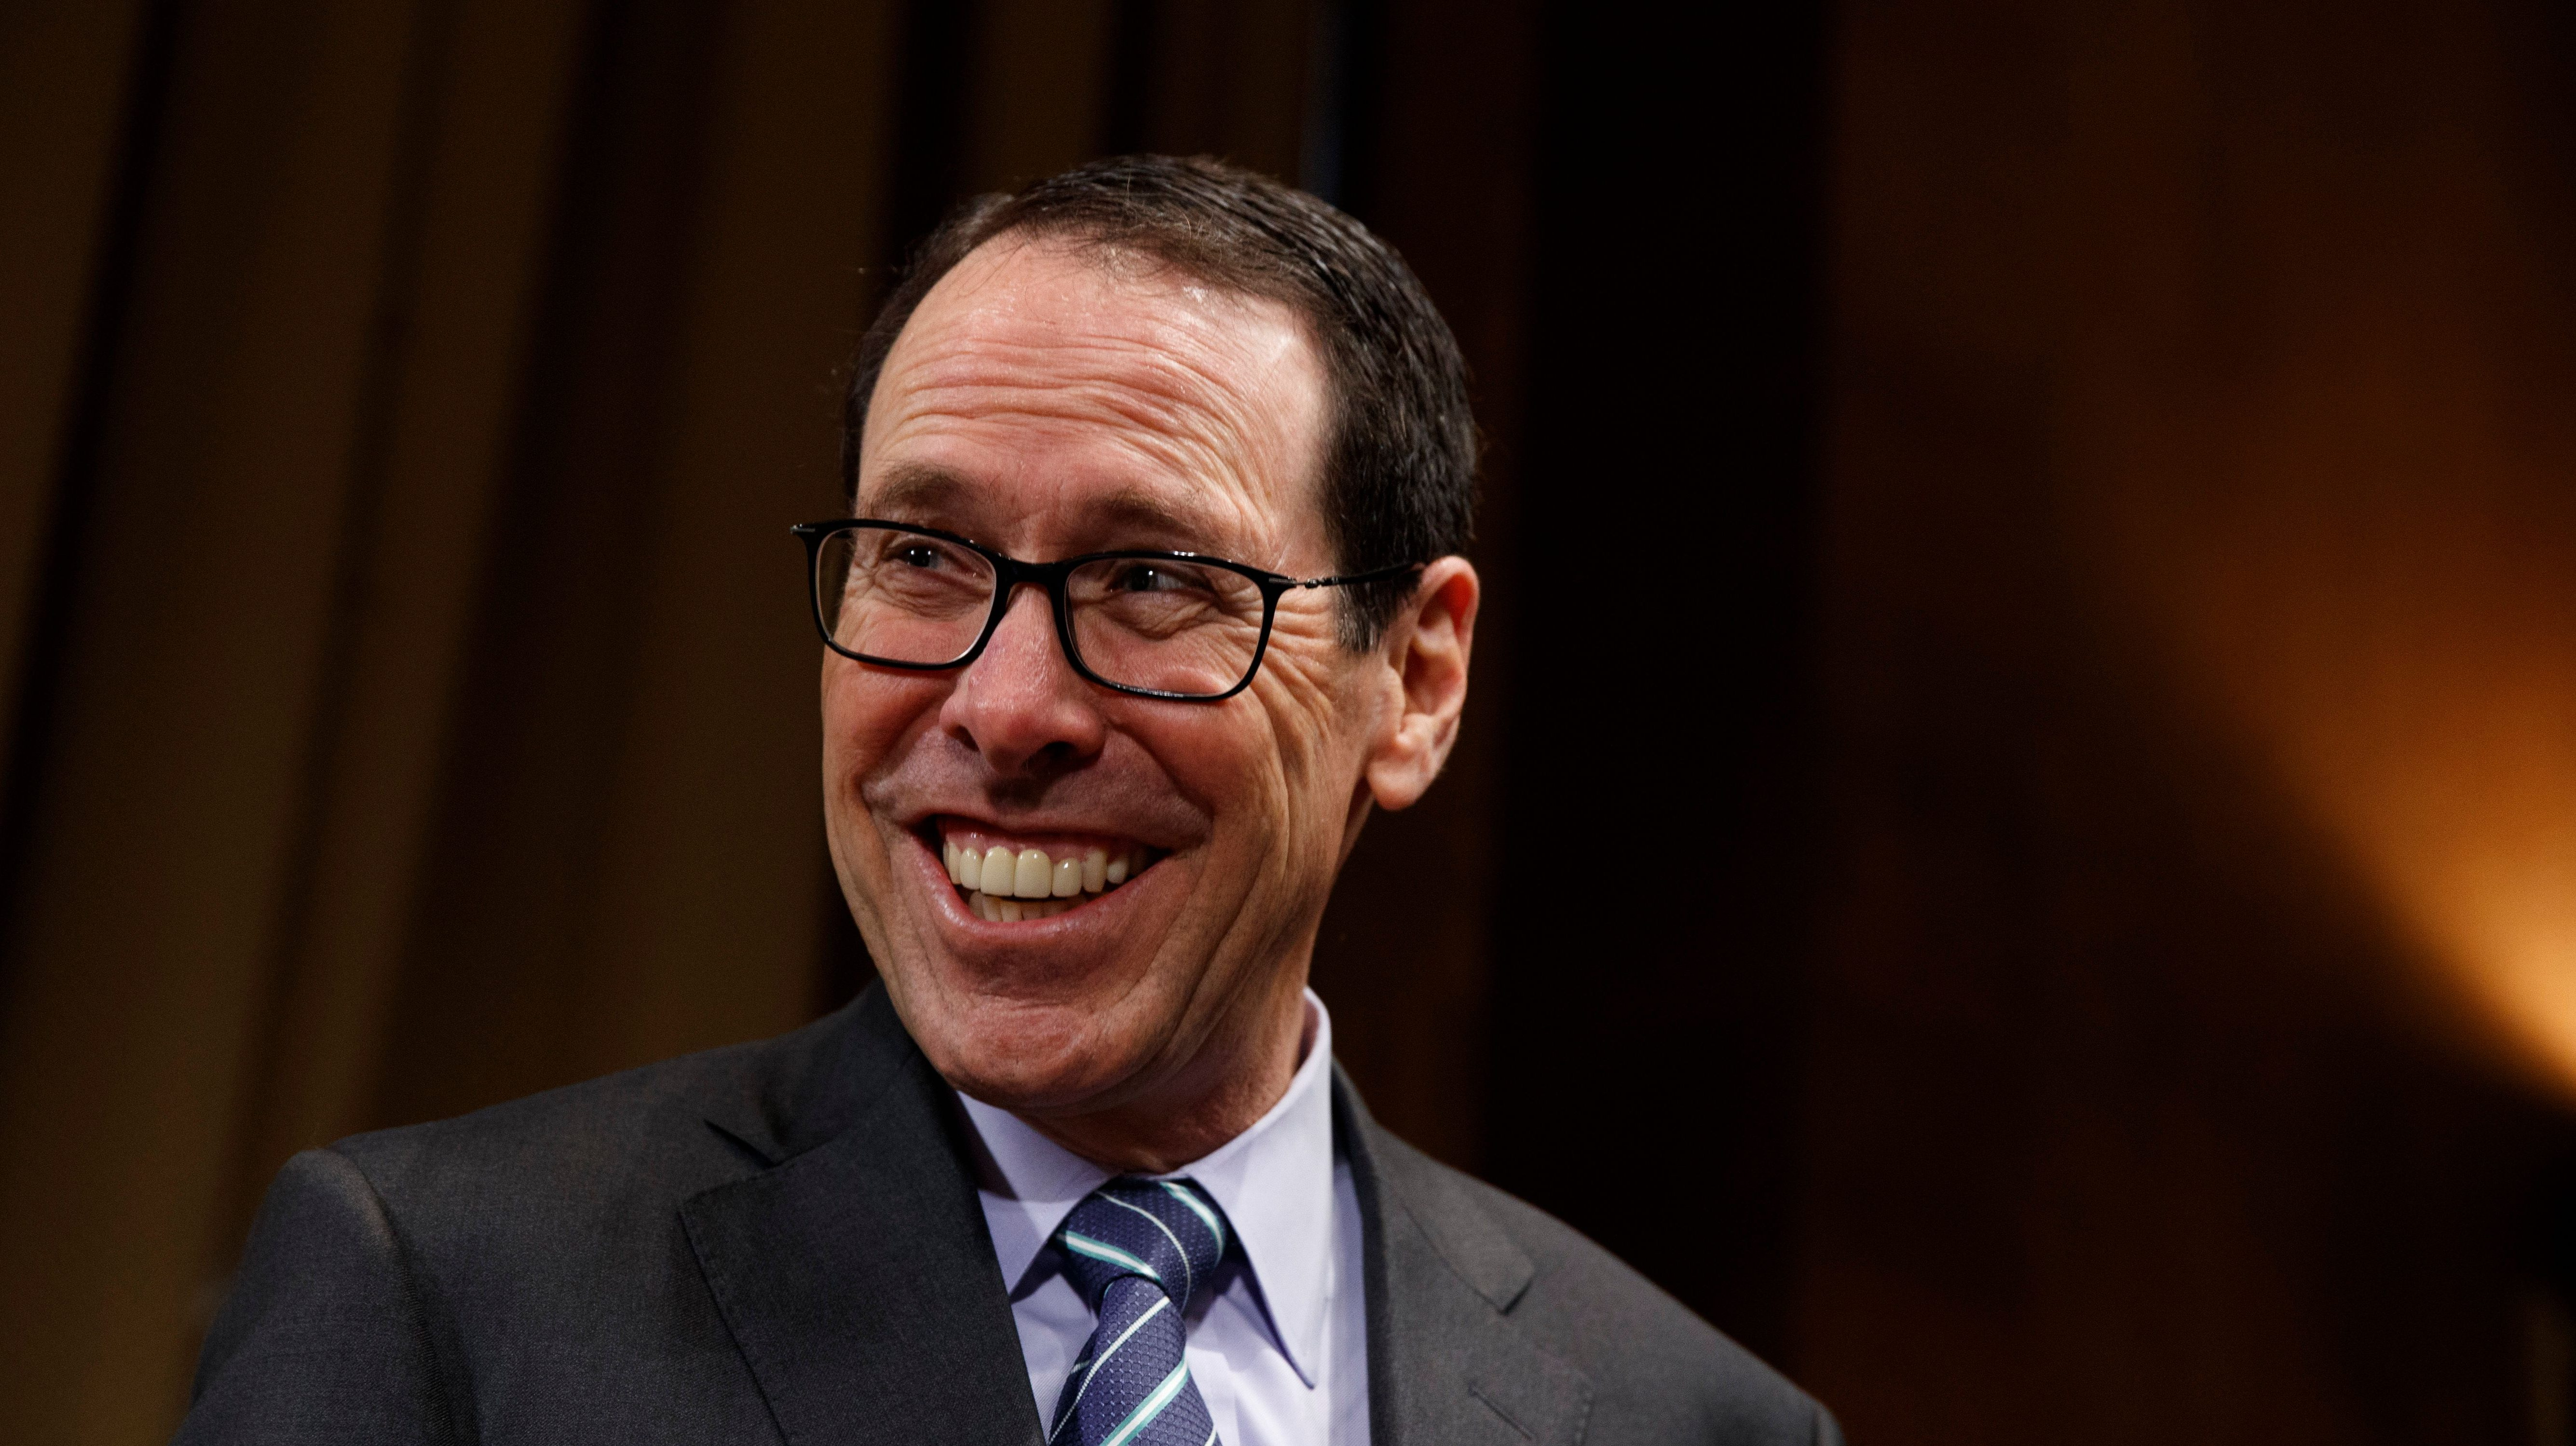 AT&T Chairman and CEO Randall Stephenson smiles on Capitol Hill in Washington, Wednesday, Dec. 7, 2016, prior to testifying before a Senate Judiciary subcommittee hearing on the proposed merger between AT&T and Time Warner. (AP Photo/Evan Vucci)